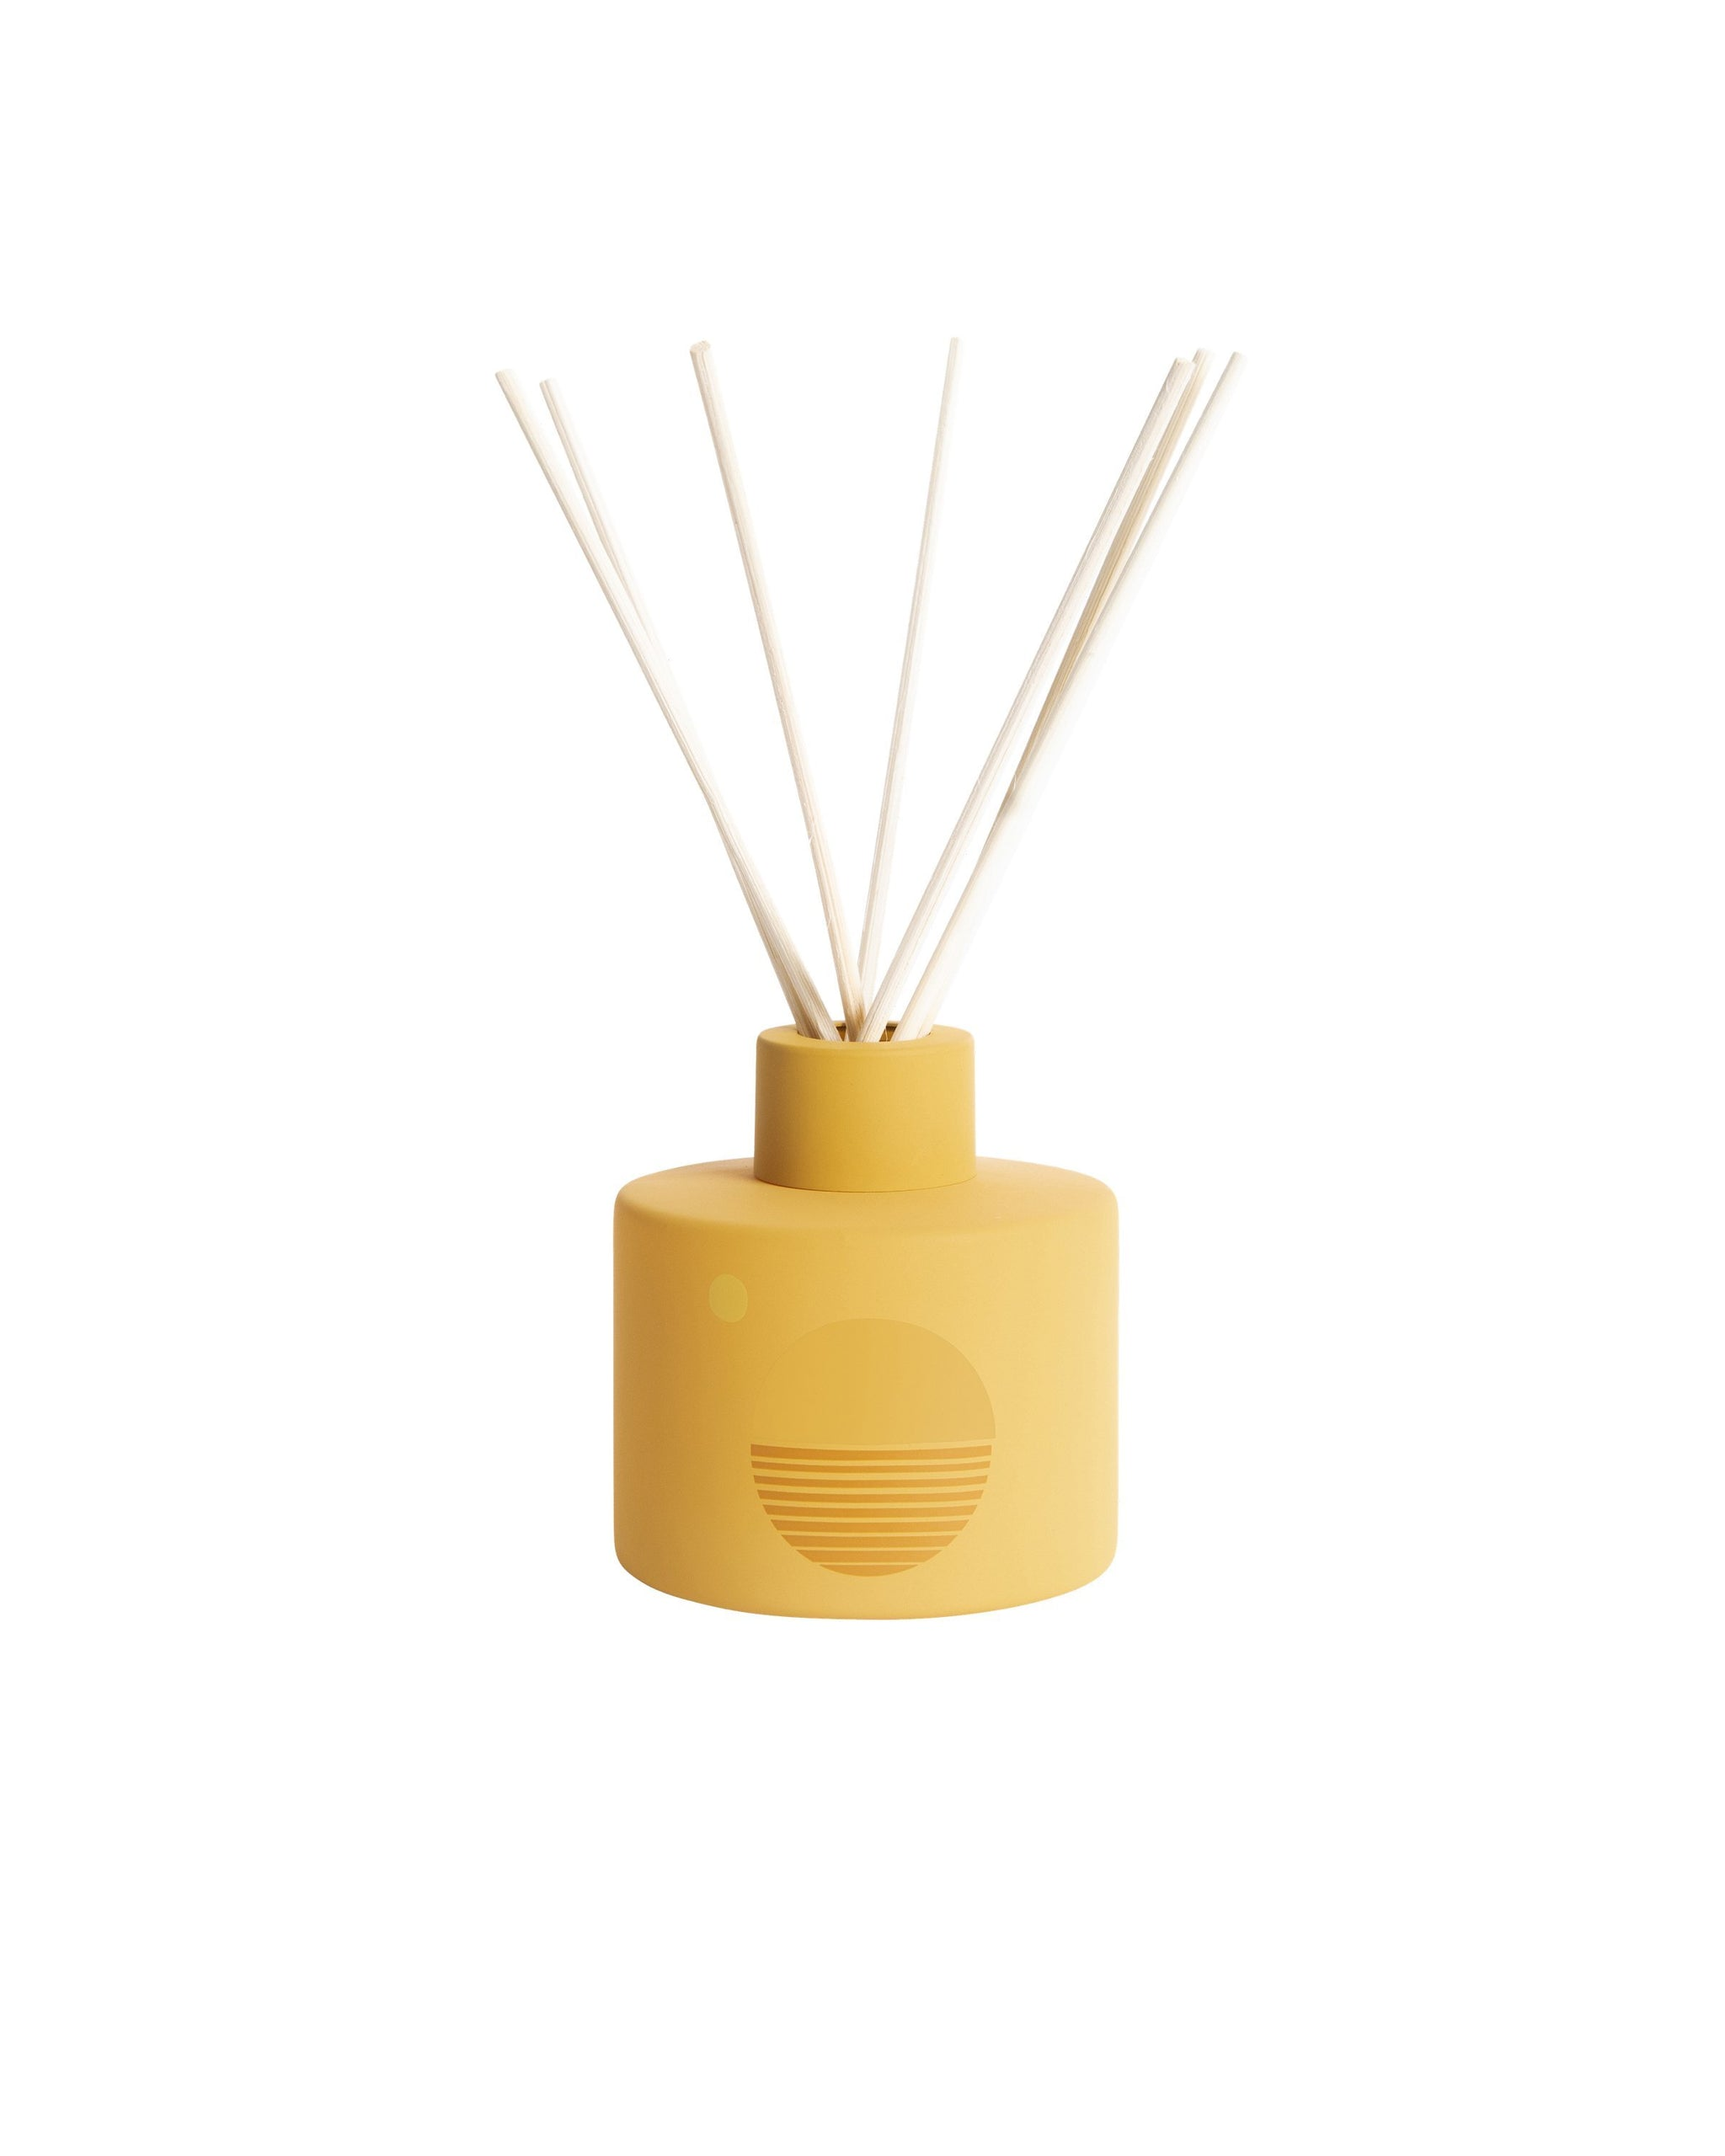 Pf Candle Co Golden Hour Diffuser